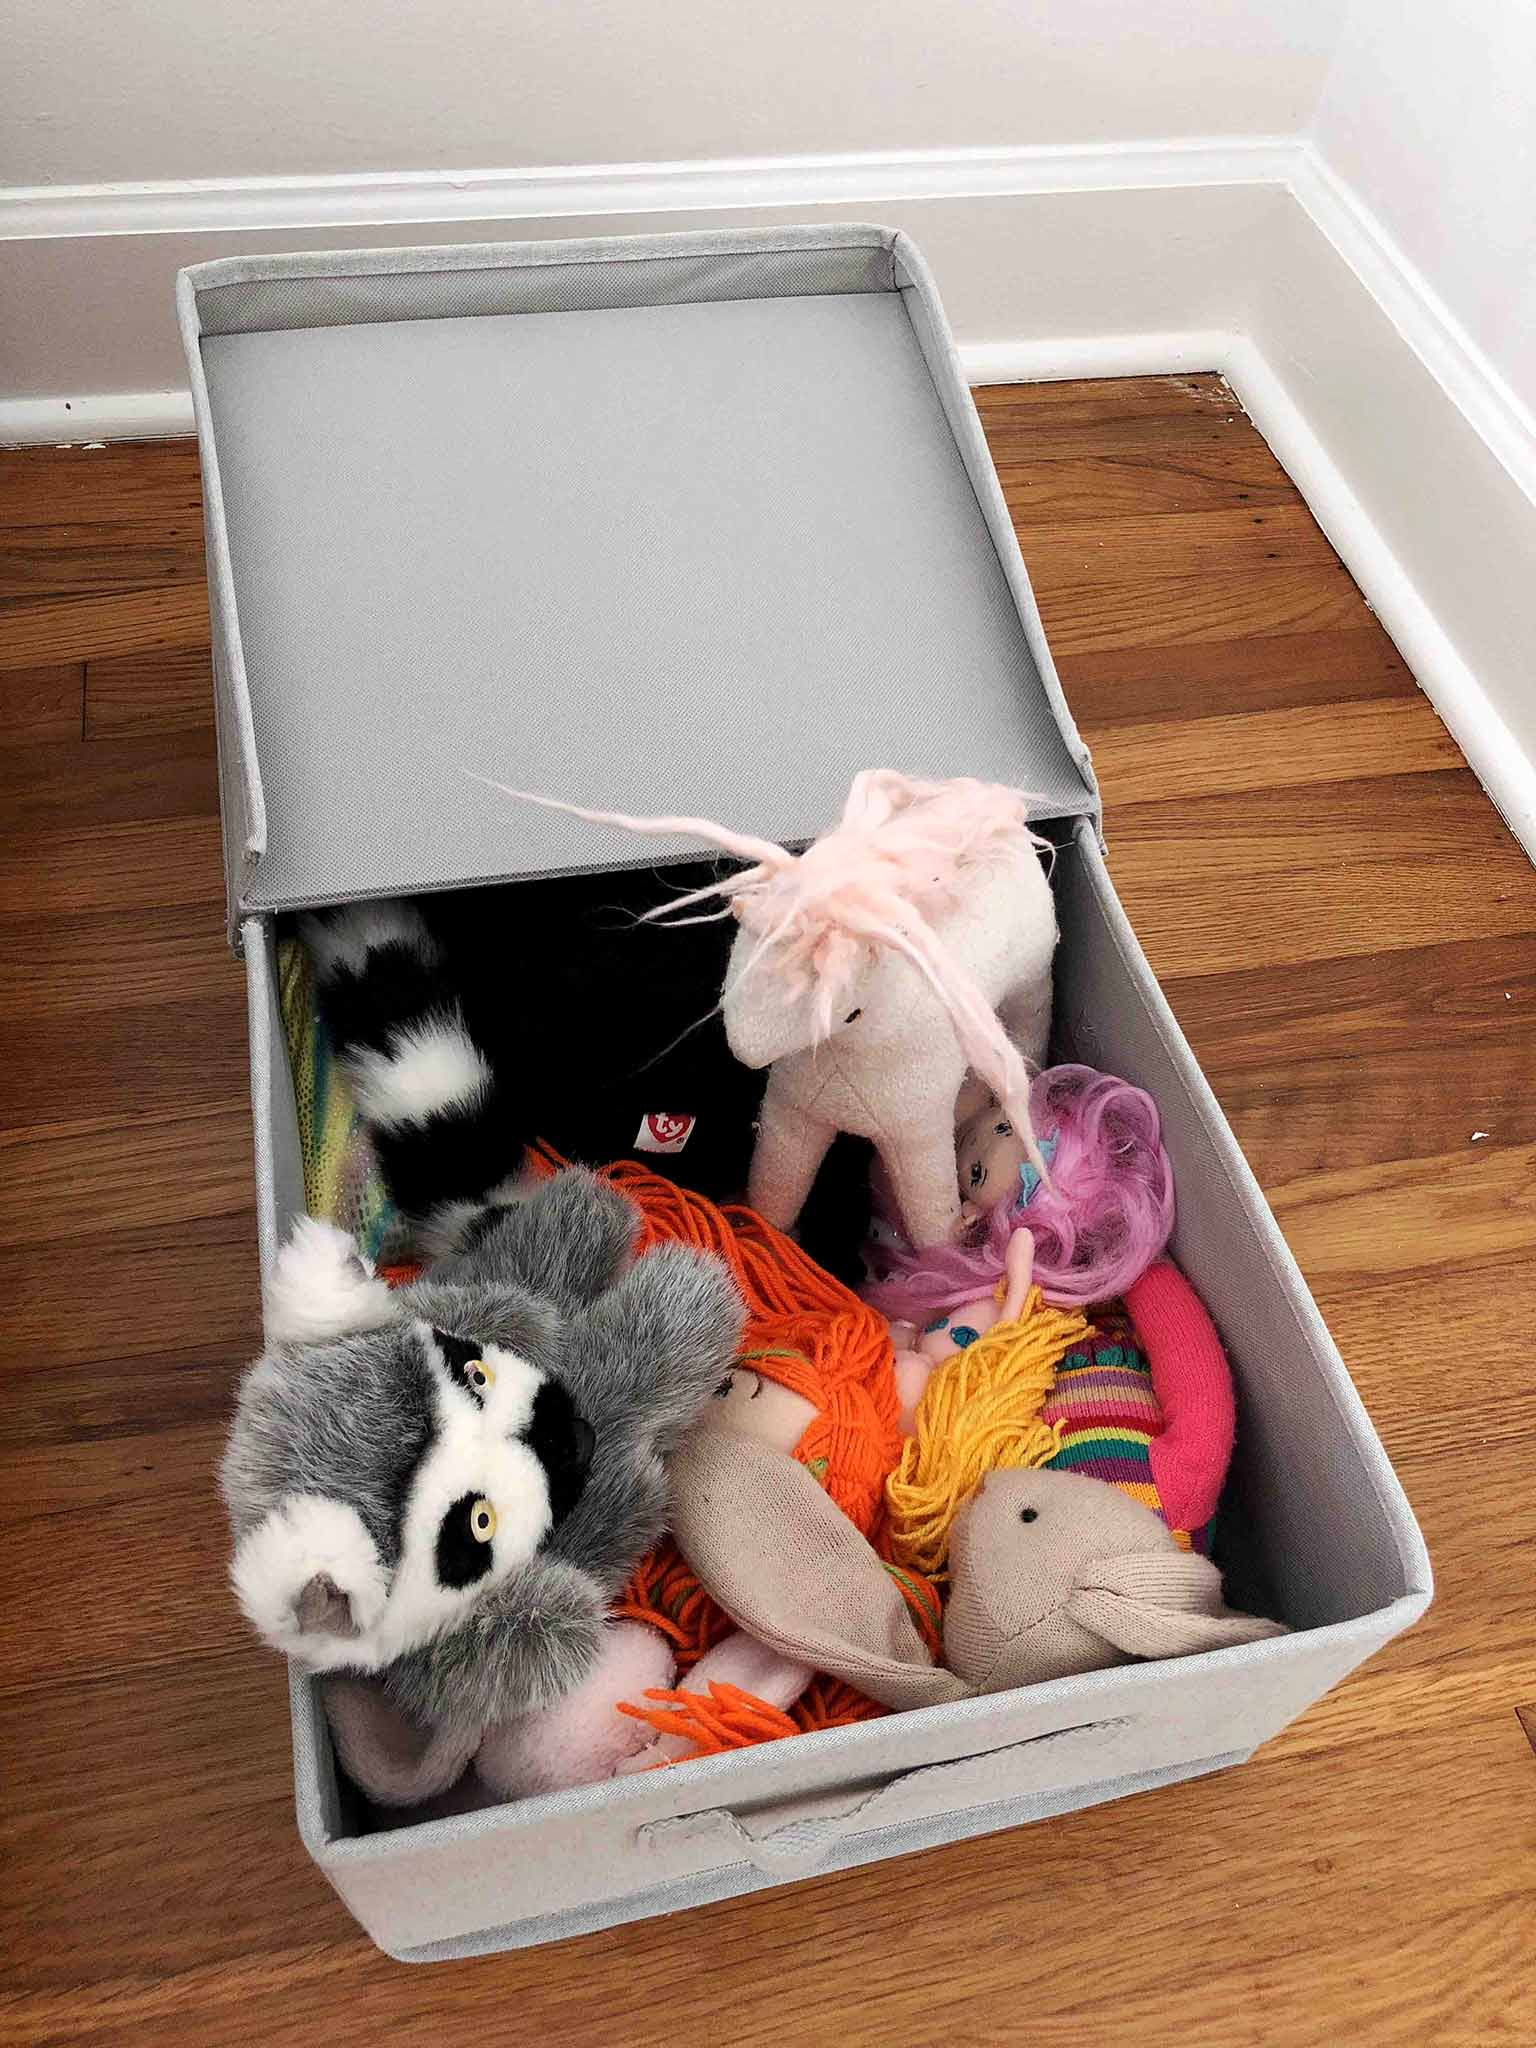 Underbed storage for stuffed animals - Guest Participant of the One Room Challenge - That Homebird Life Blog